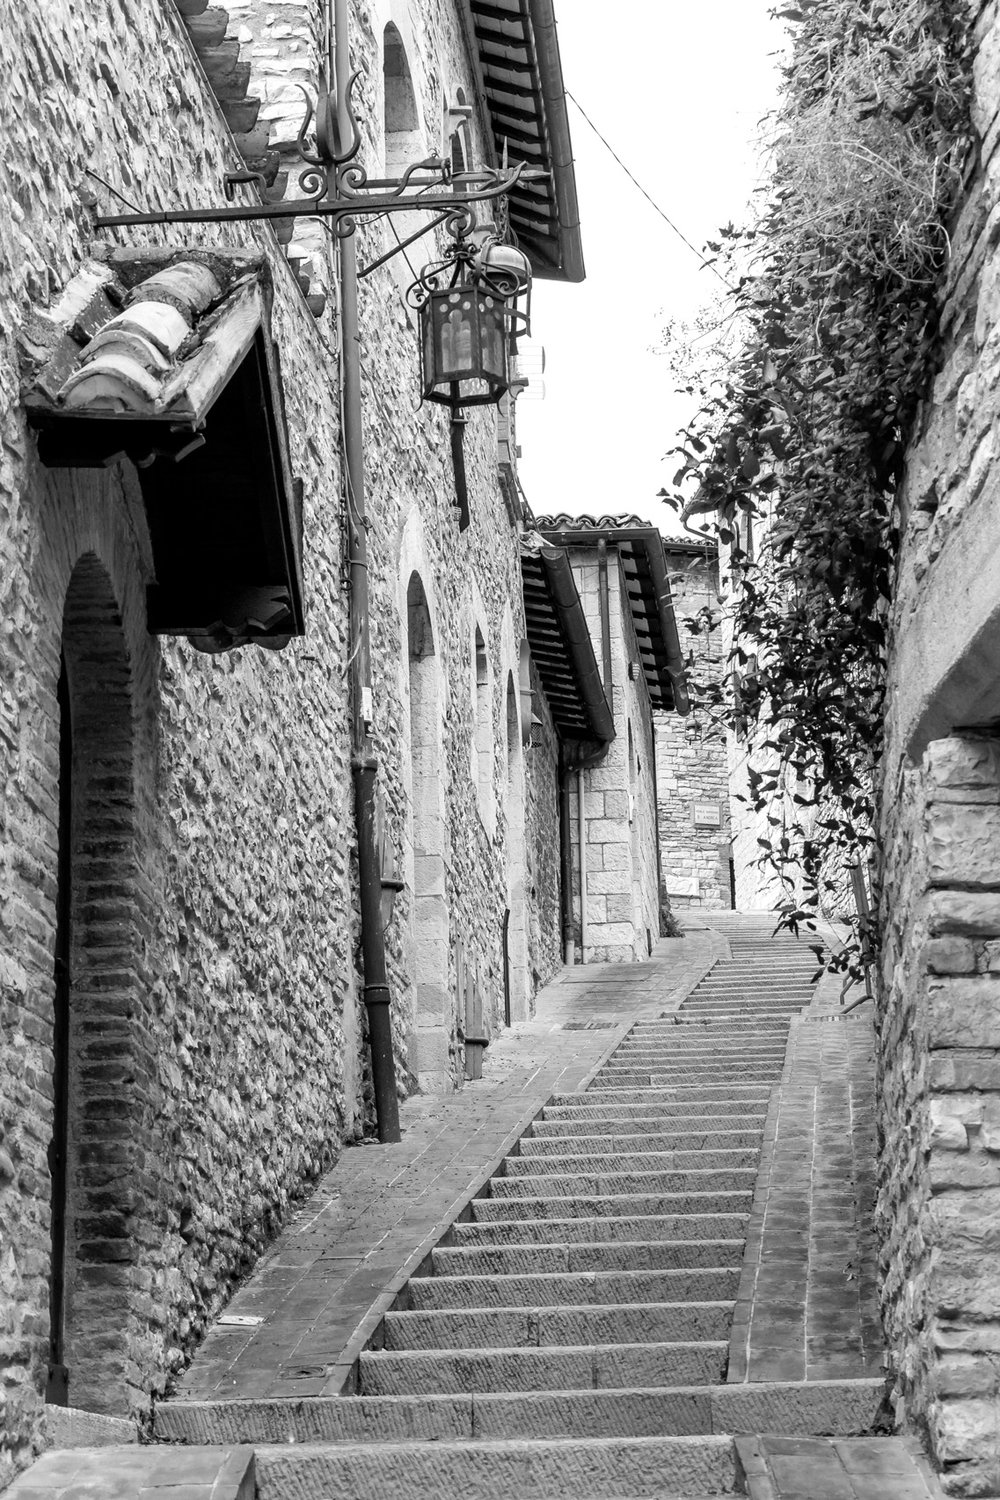 The streets of Assisi, Italy